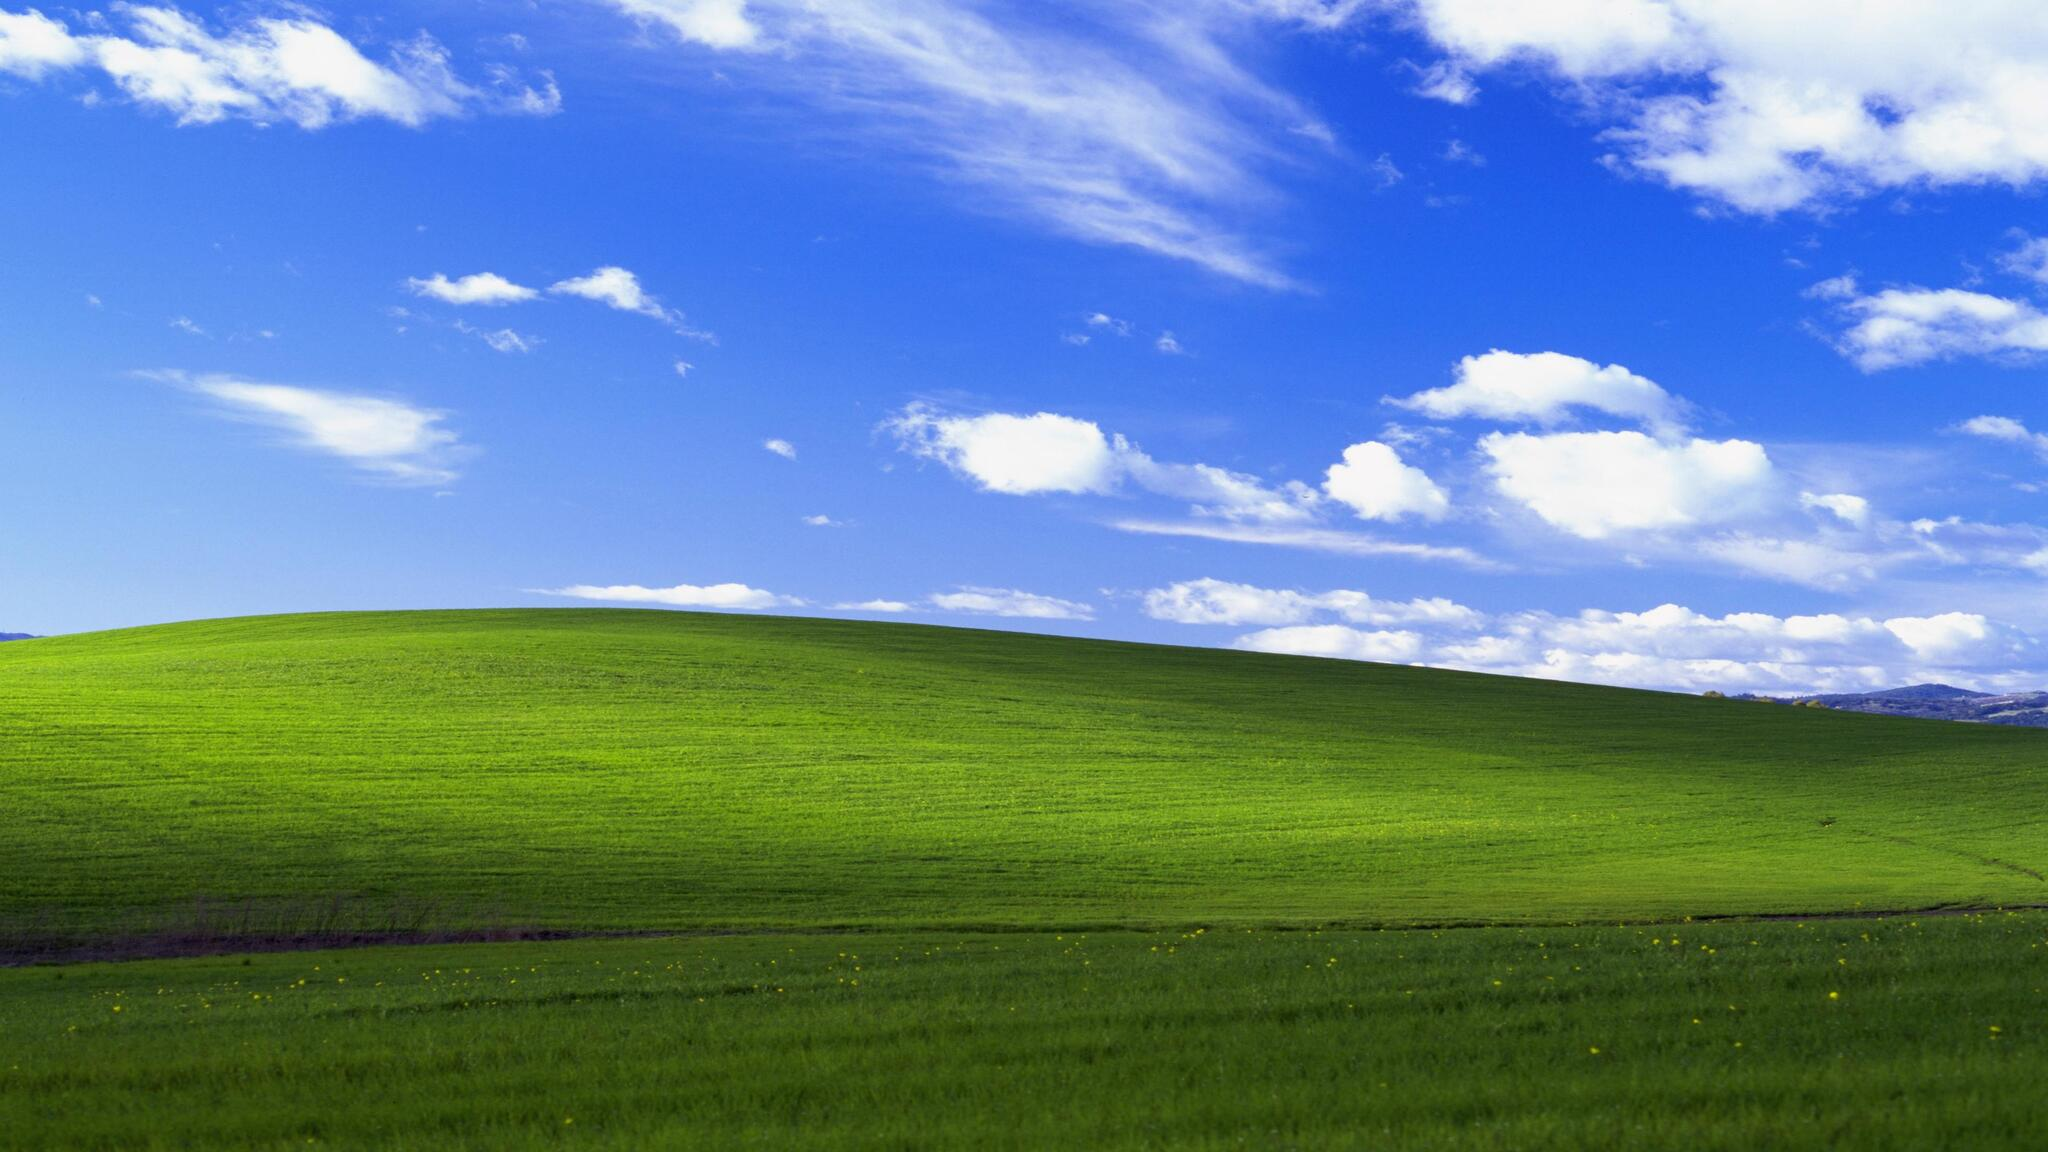 48x1152 Windows Xp Bliss 4k 48x1152 Resolution Hd 4k Wallpapers Images Backgrounds Photos And Pictures